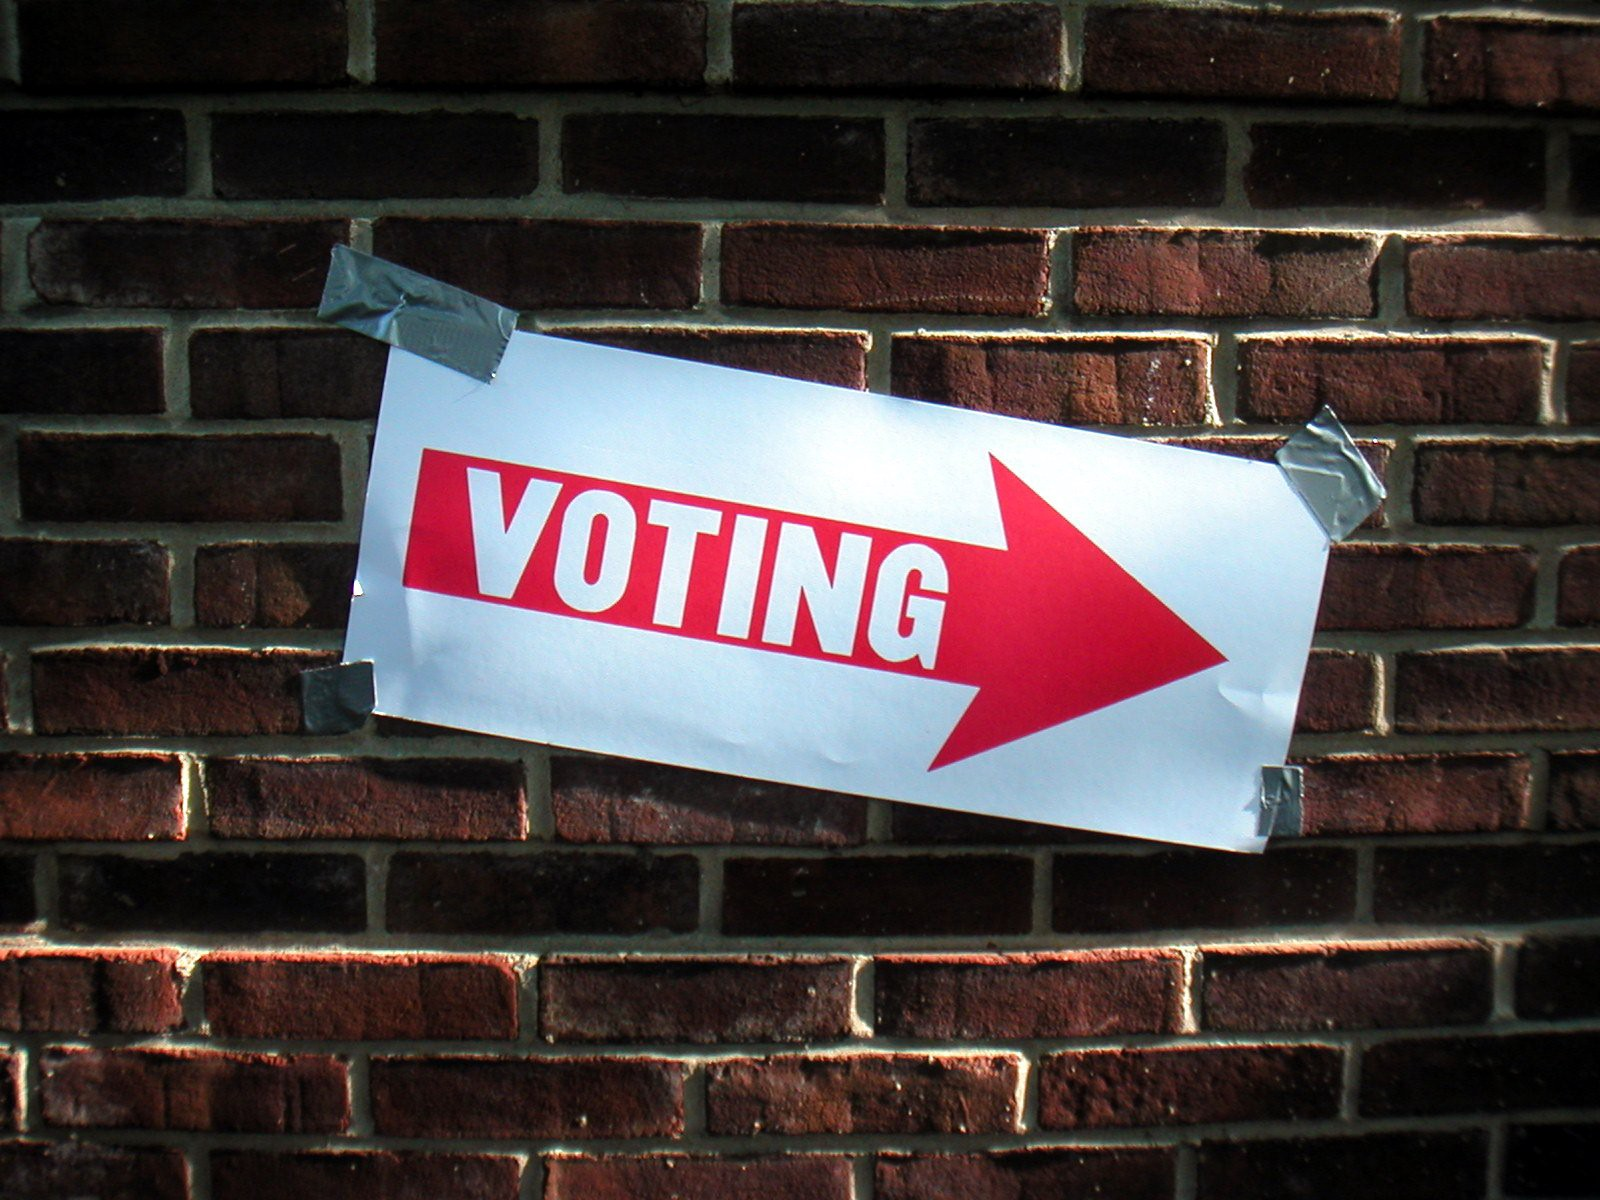 Voting sign taped to a wall. Courtesy Keith Ivey via flickr.